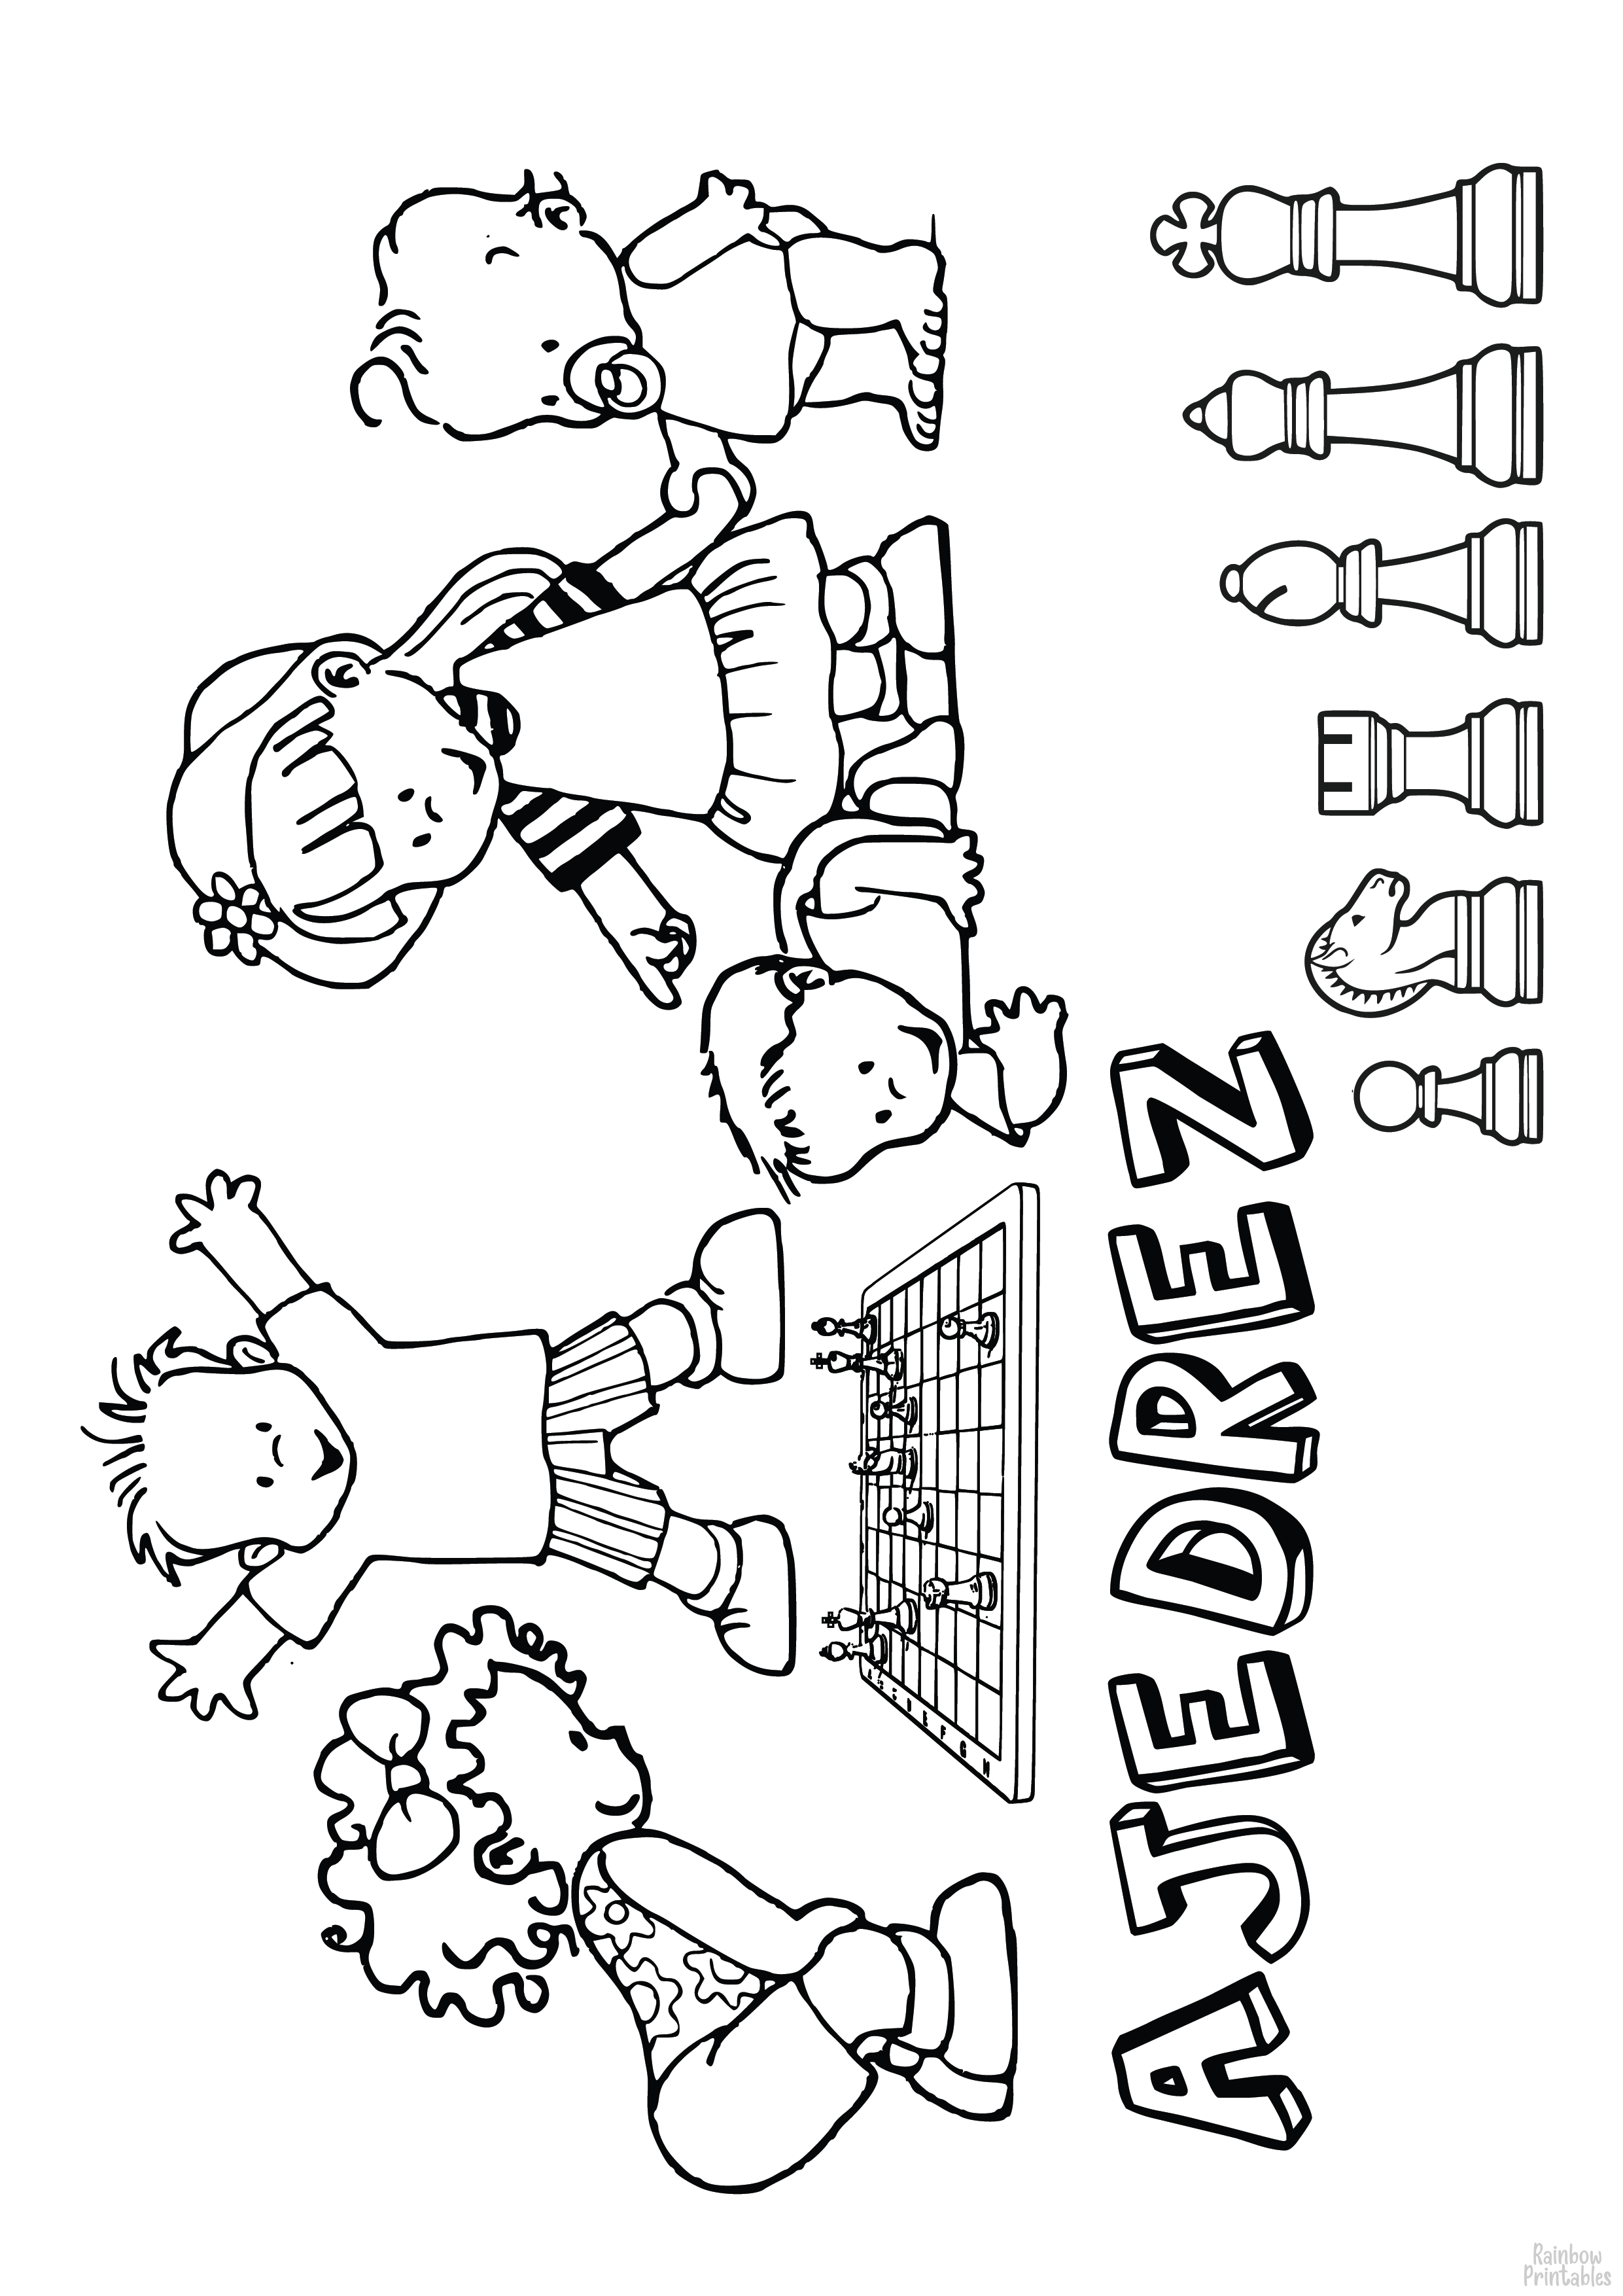 Kids Playing Chess People Free Clipart Coloring Pages for Kids Adults Art Activities Line Art-03